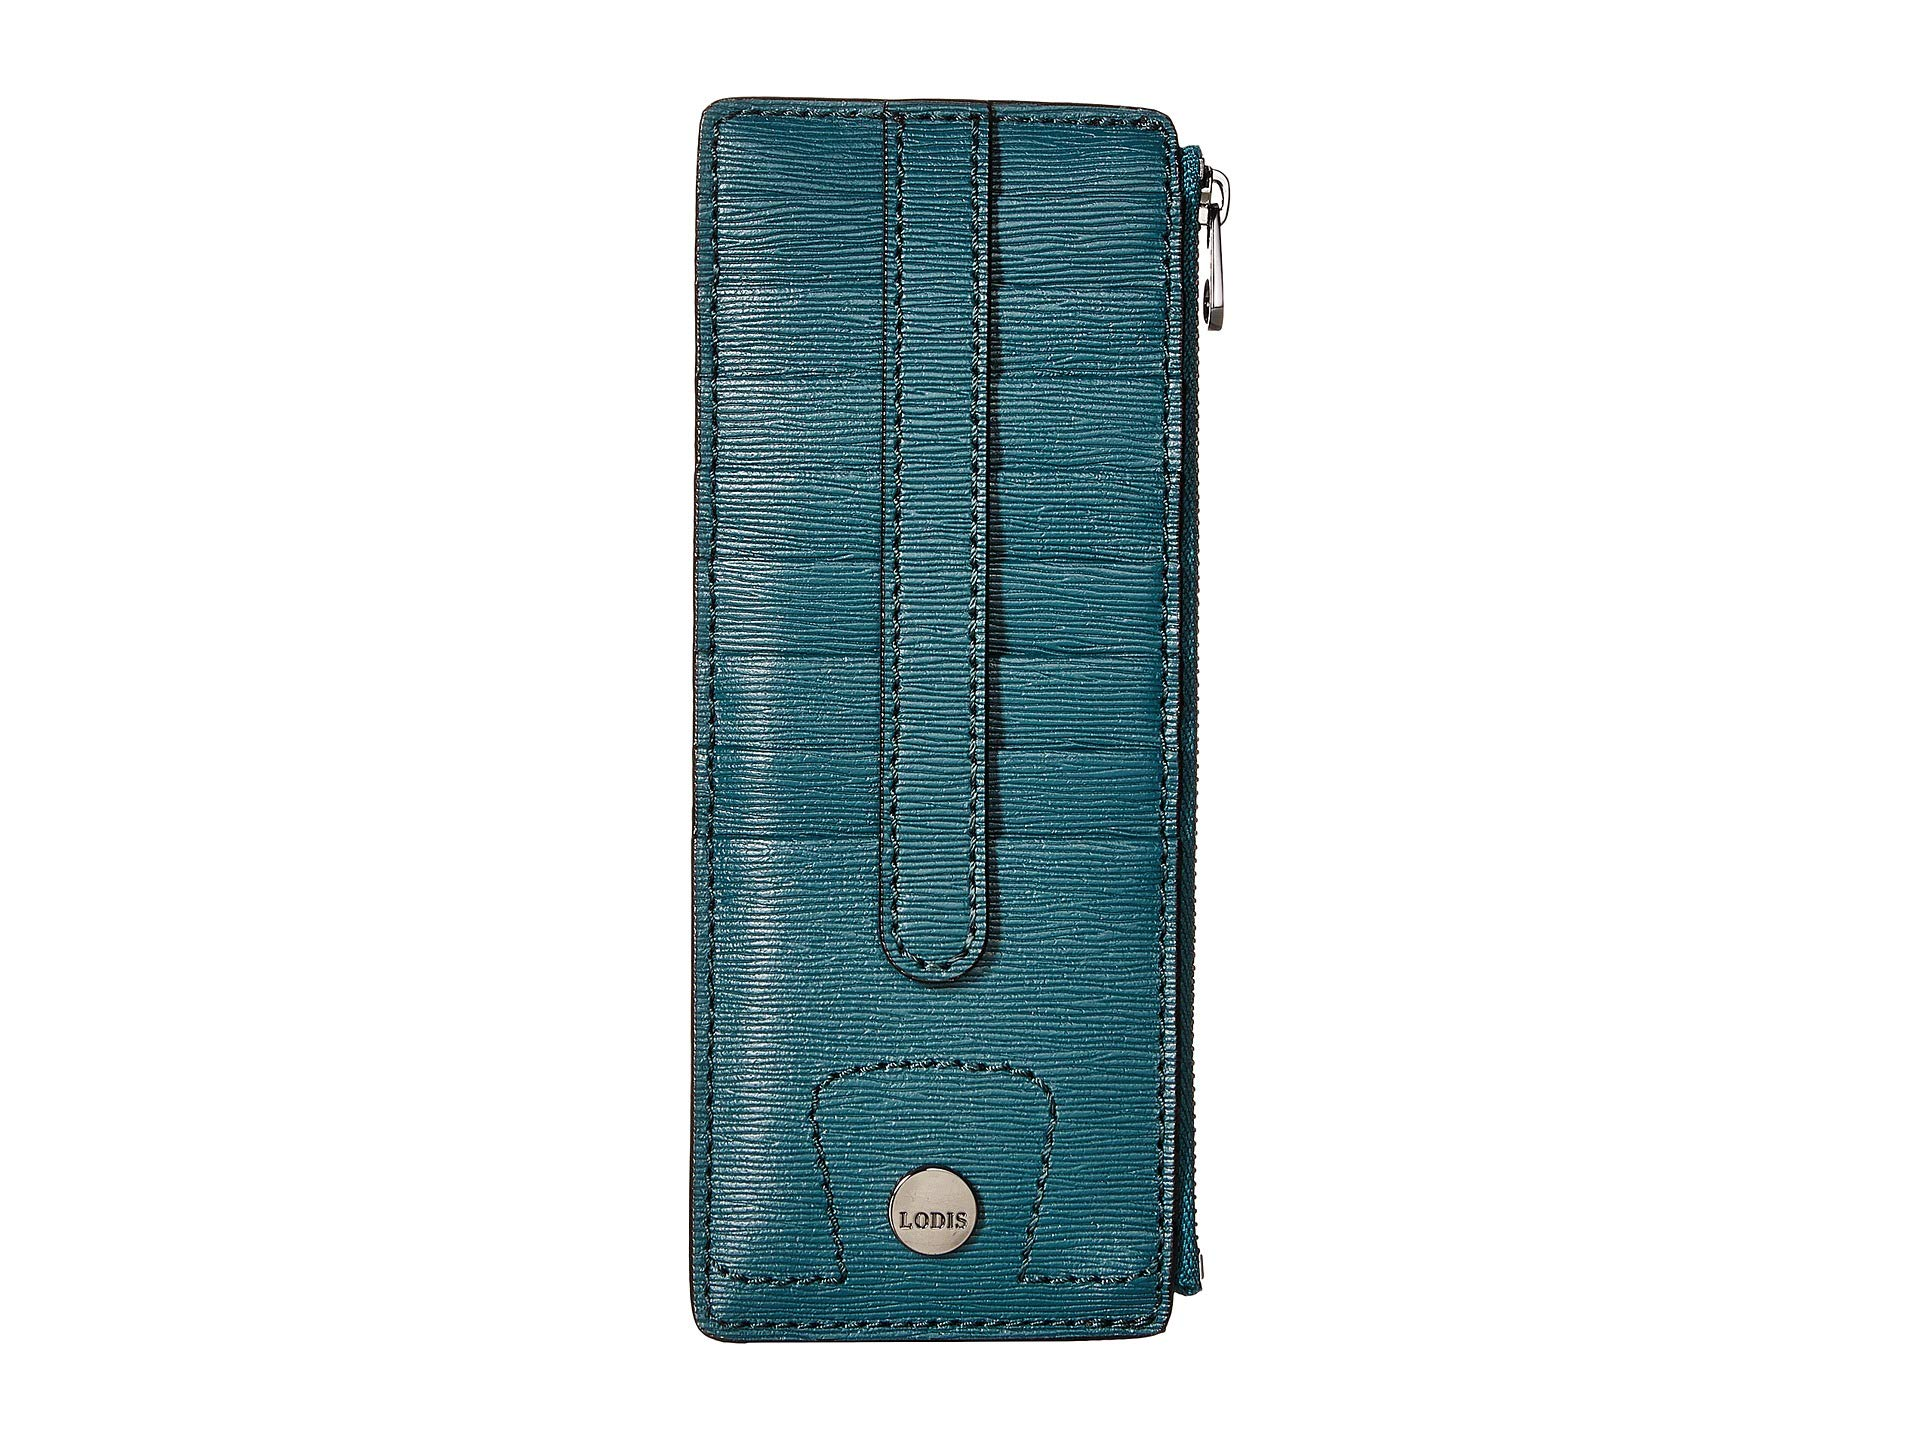 Lodis Zipper Hunter Pocket Belair Accessories Card Case Credit With r4wra1gqW